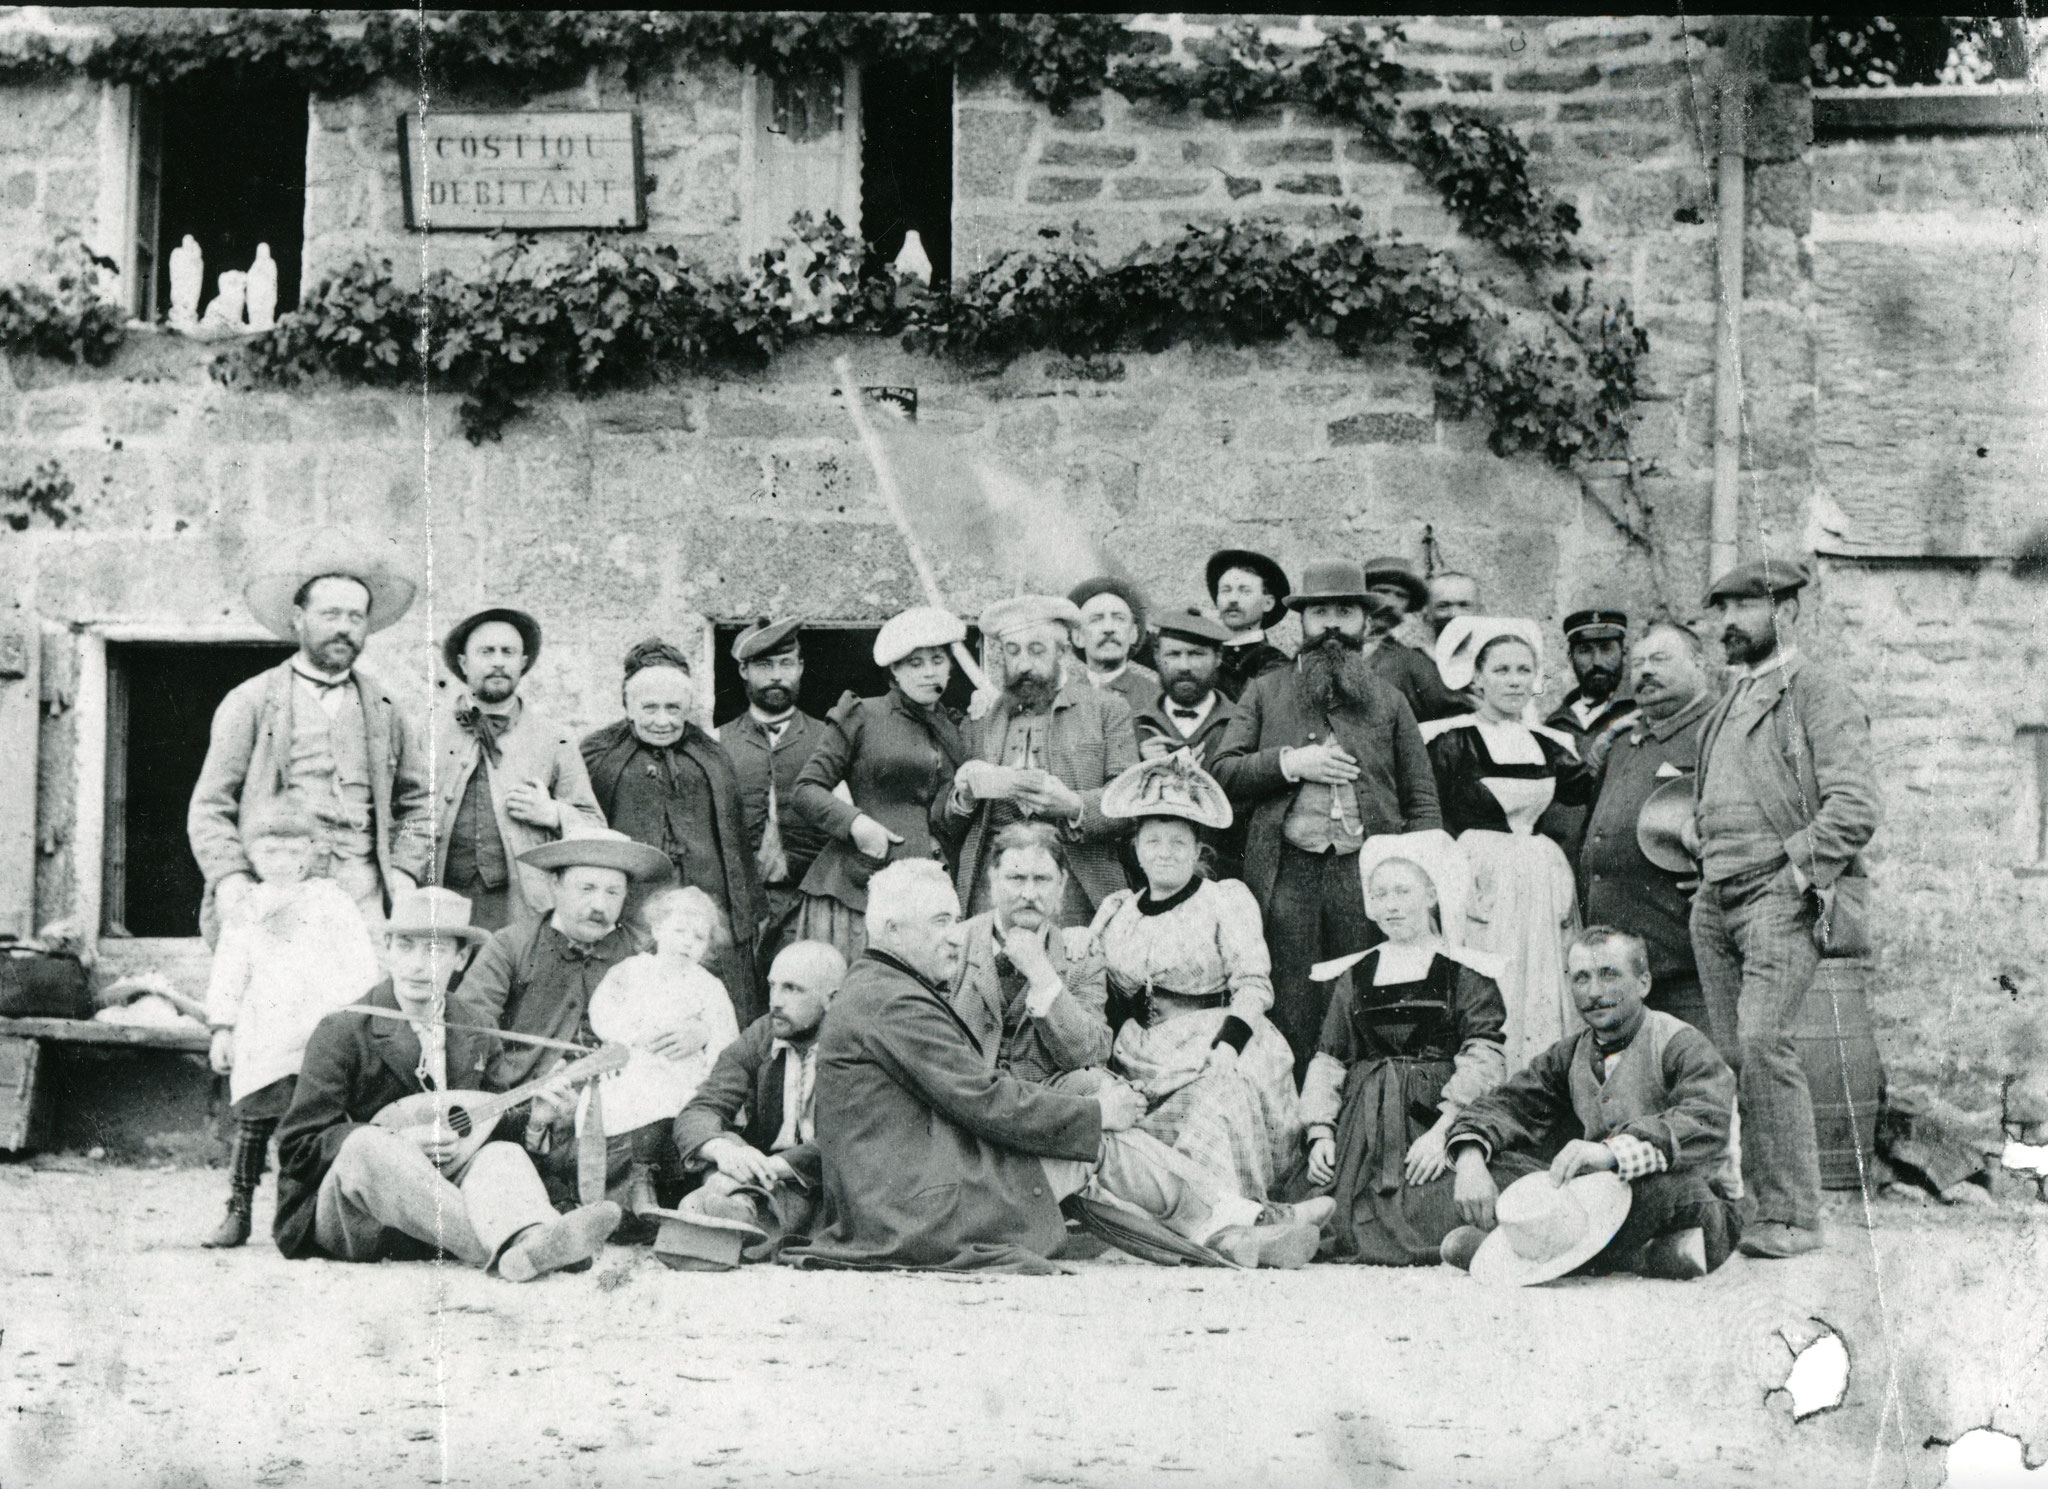 Amiet with artist friends in Pont Aven, 1892 (front row, third from the left)